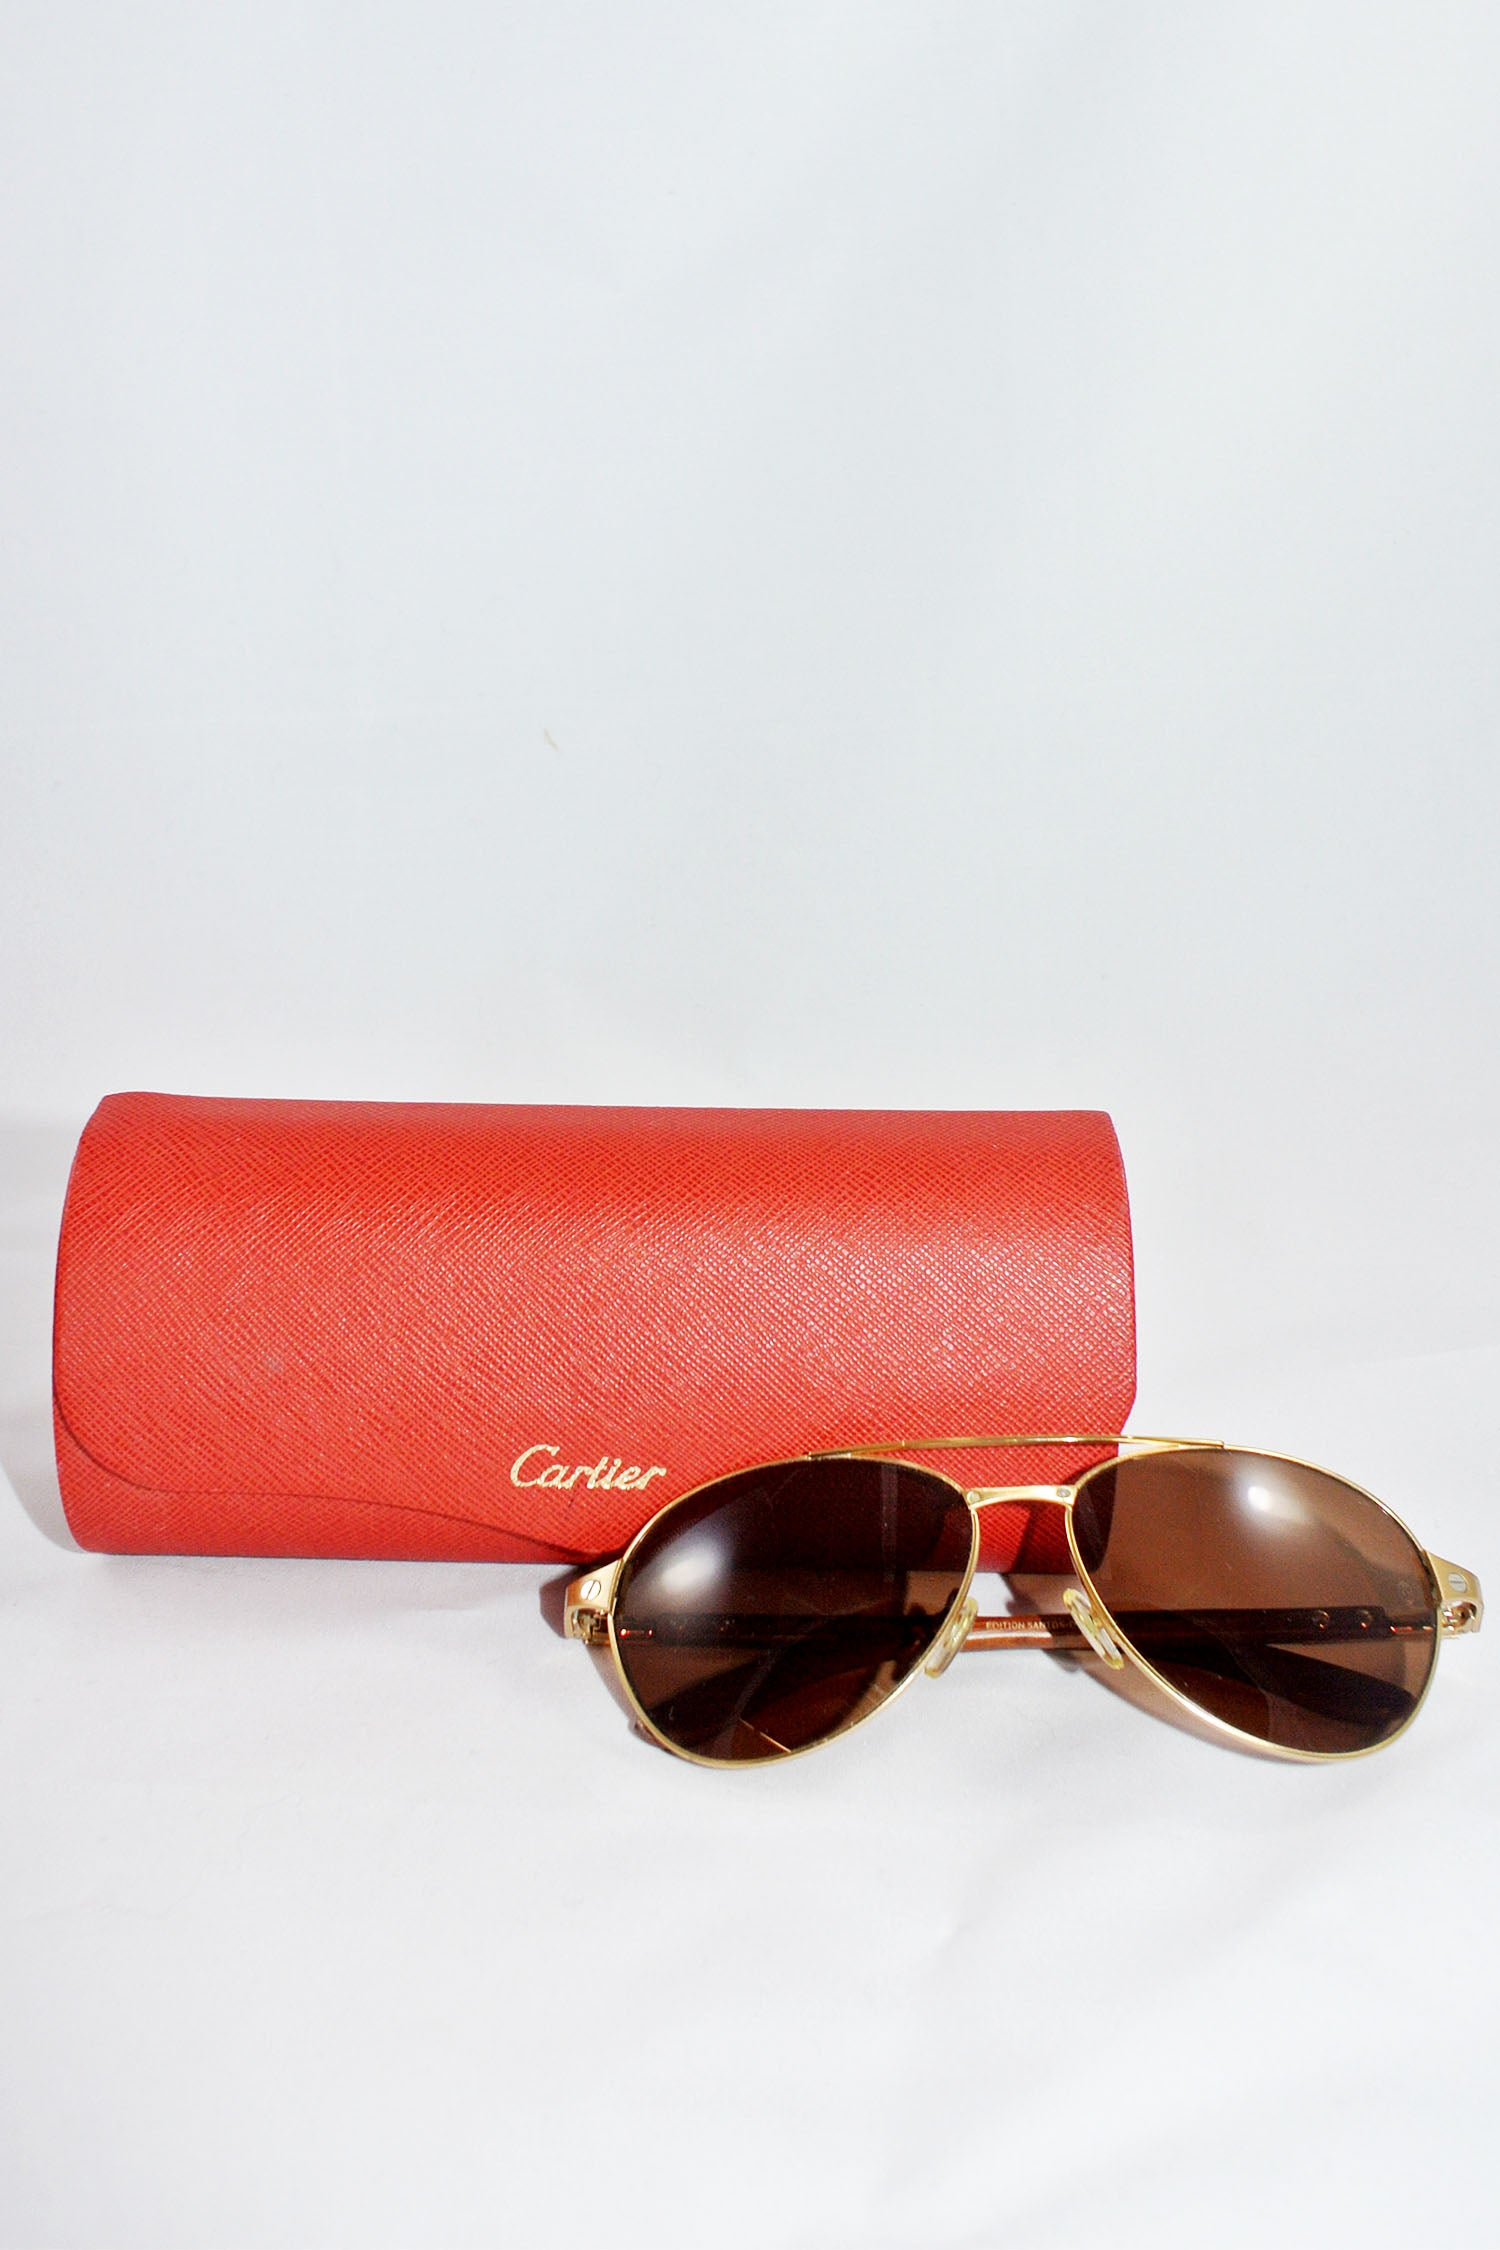 Cartier Santos-Dumont Gold Love Sunglasses